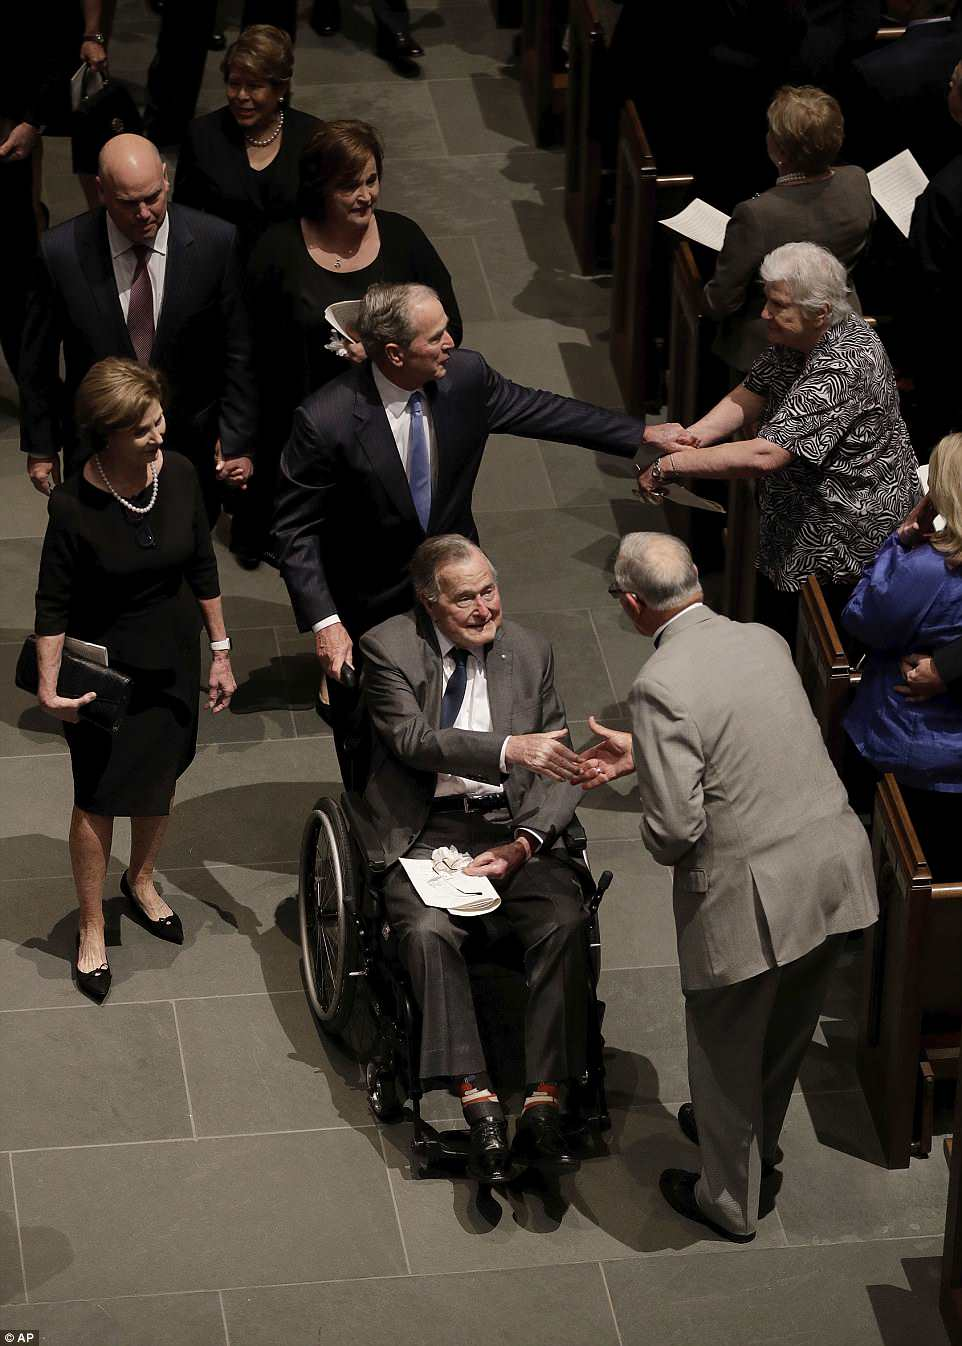 George H.W. Bush shook hands with mourners as he led the family after the service